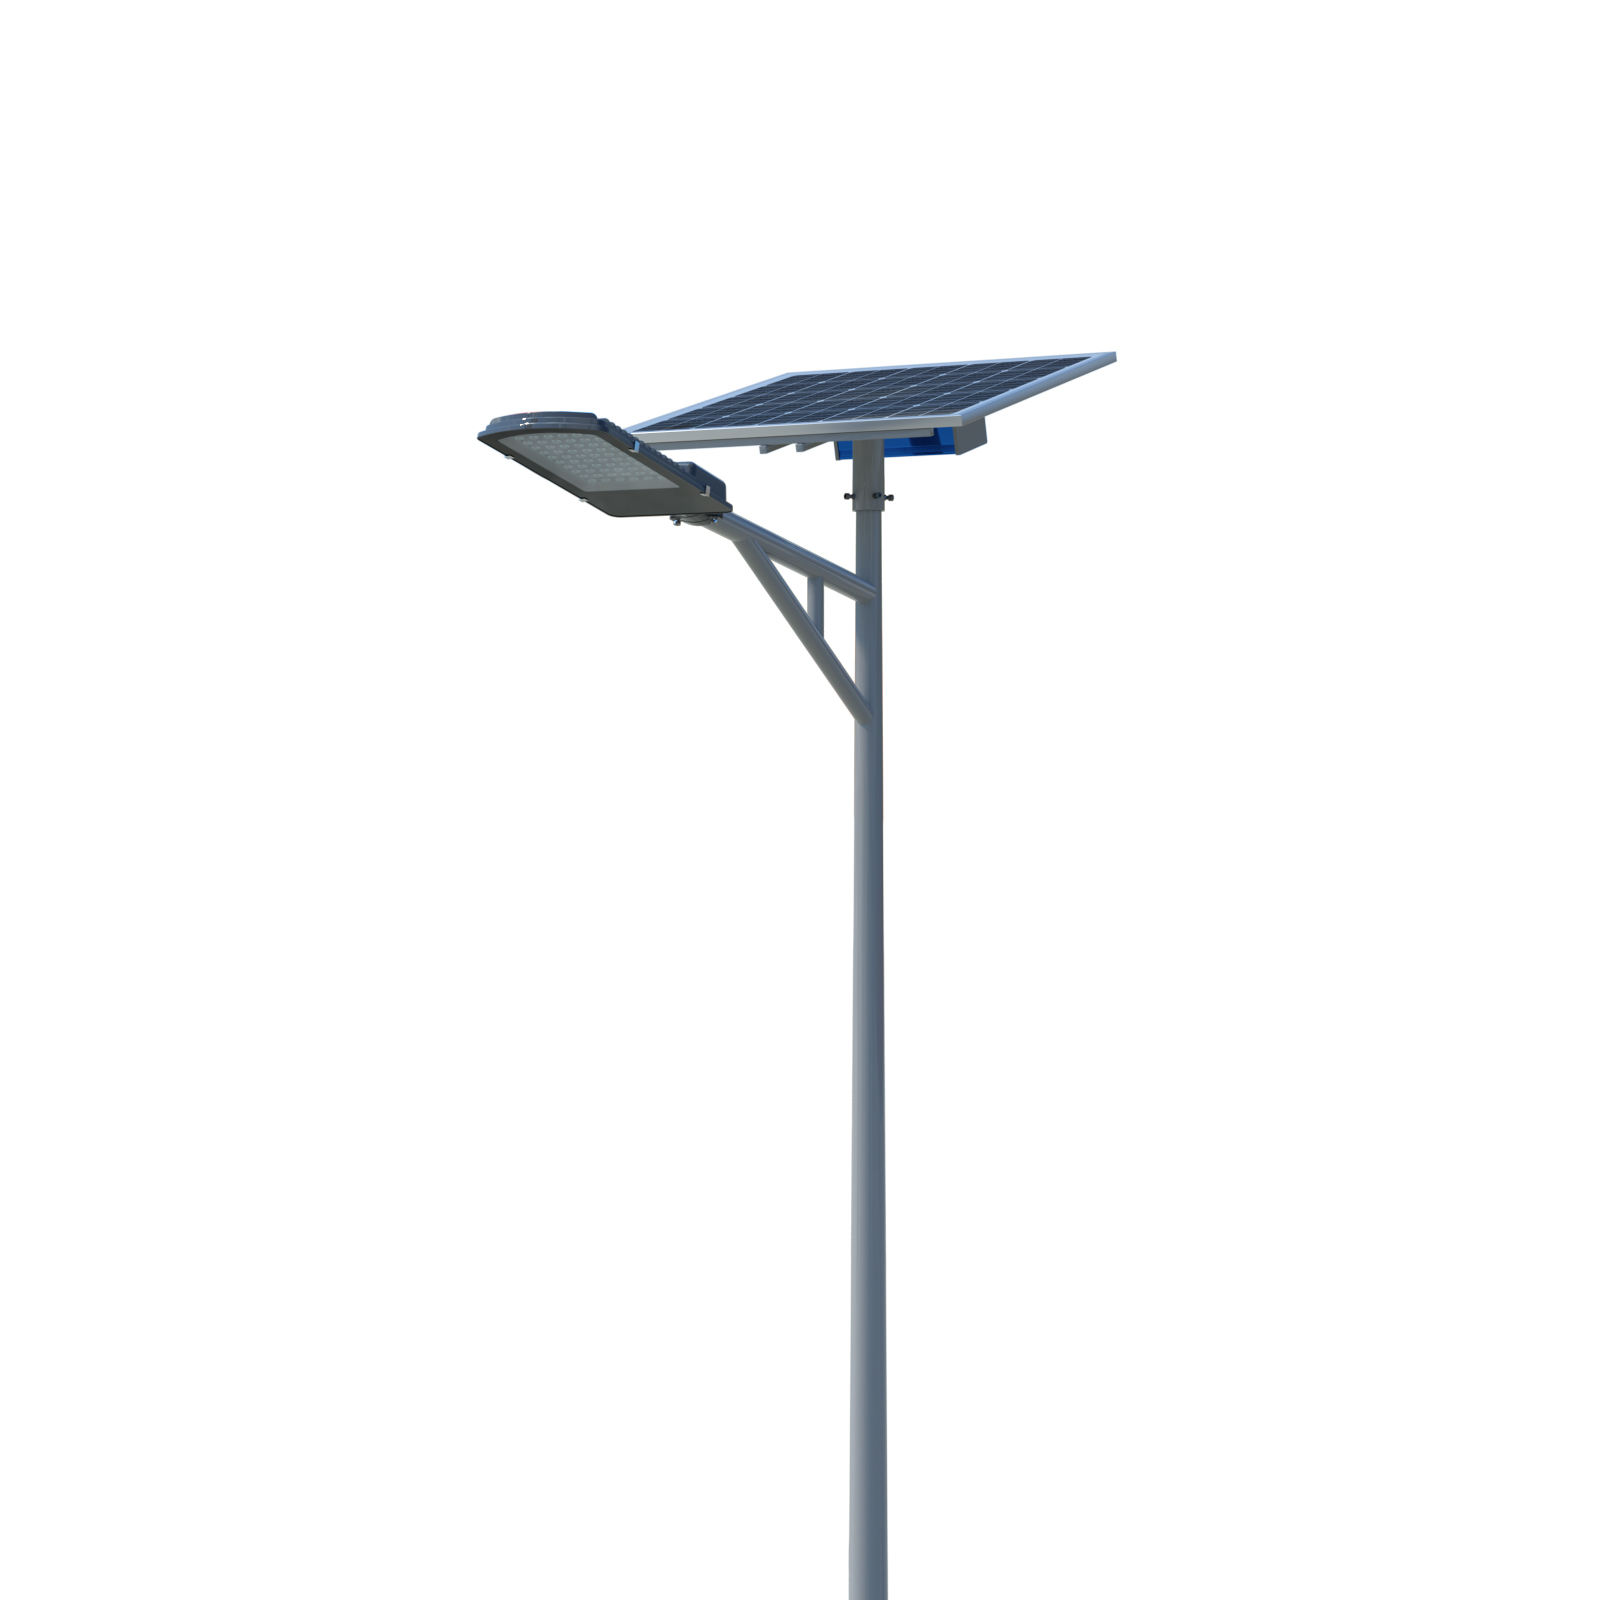 Stand alone automatic lighting MPPT 30w solar led street light with 6m pole